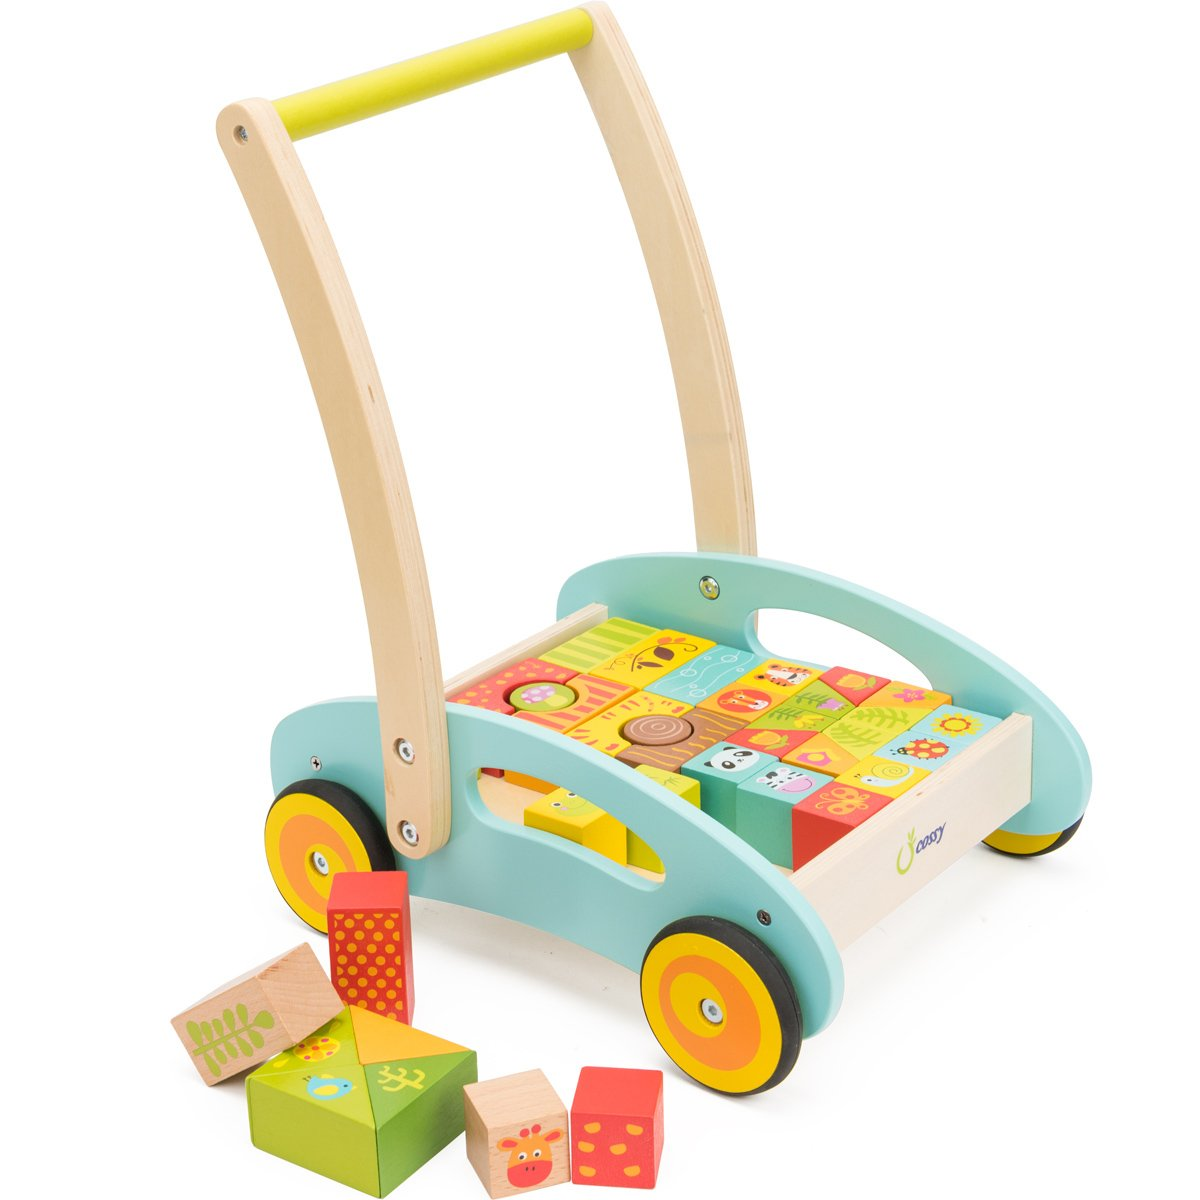 COSSY Wooden Baby Learning Walker Toddler Toys for 1 Year Old Forest Theme Blocks and Roll Cart Push and Pull Toy (36 pcs)